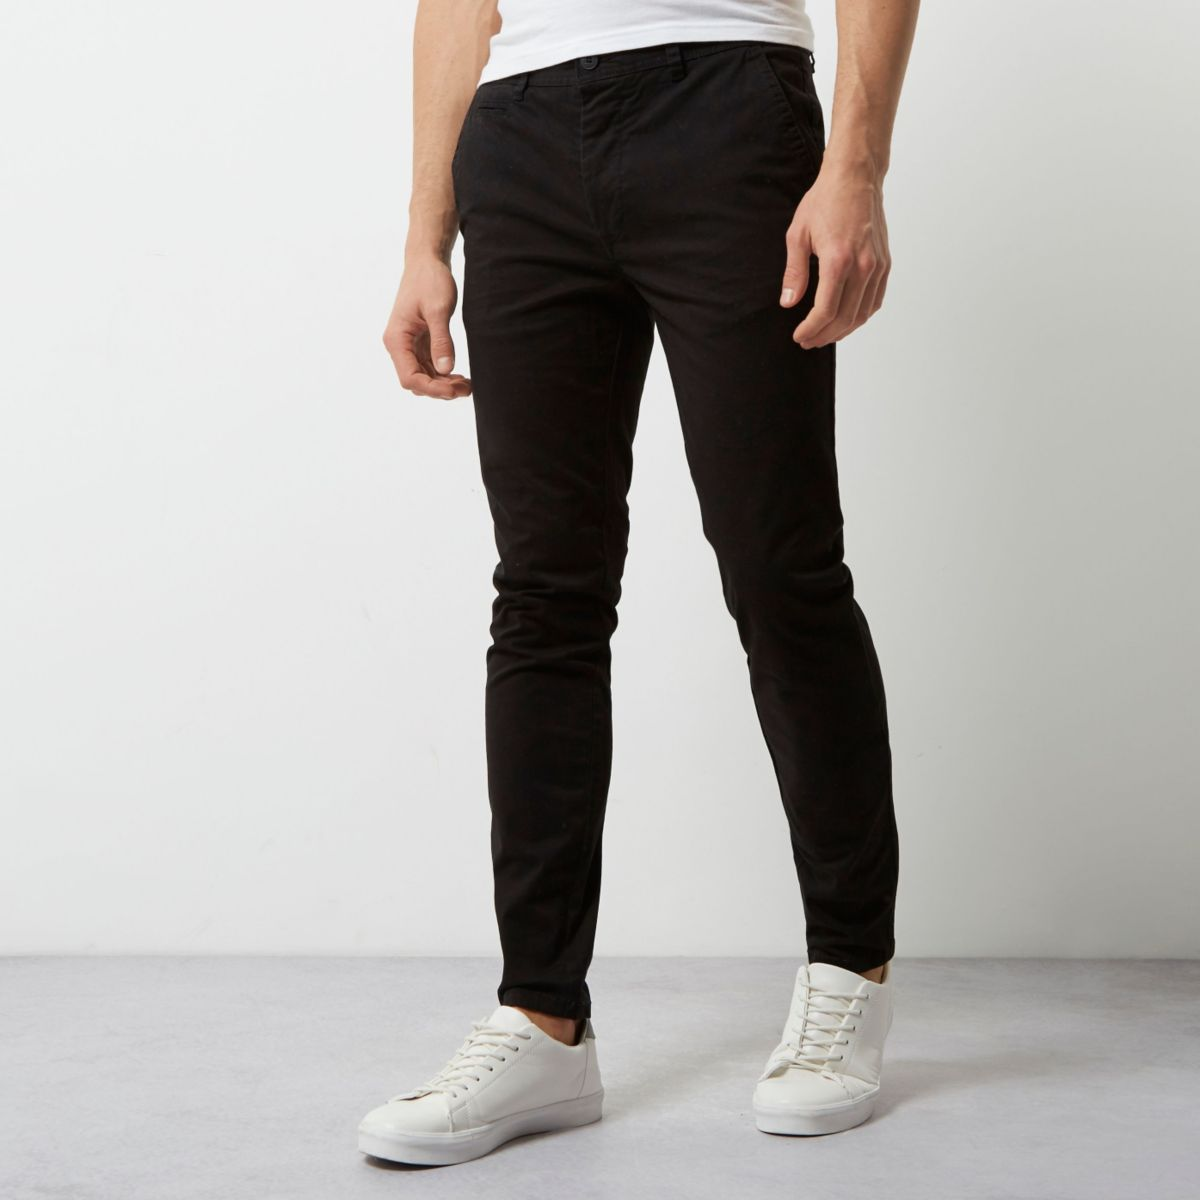 Black super skinny casual chino pants